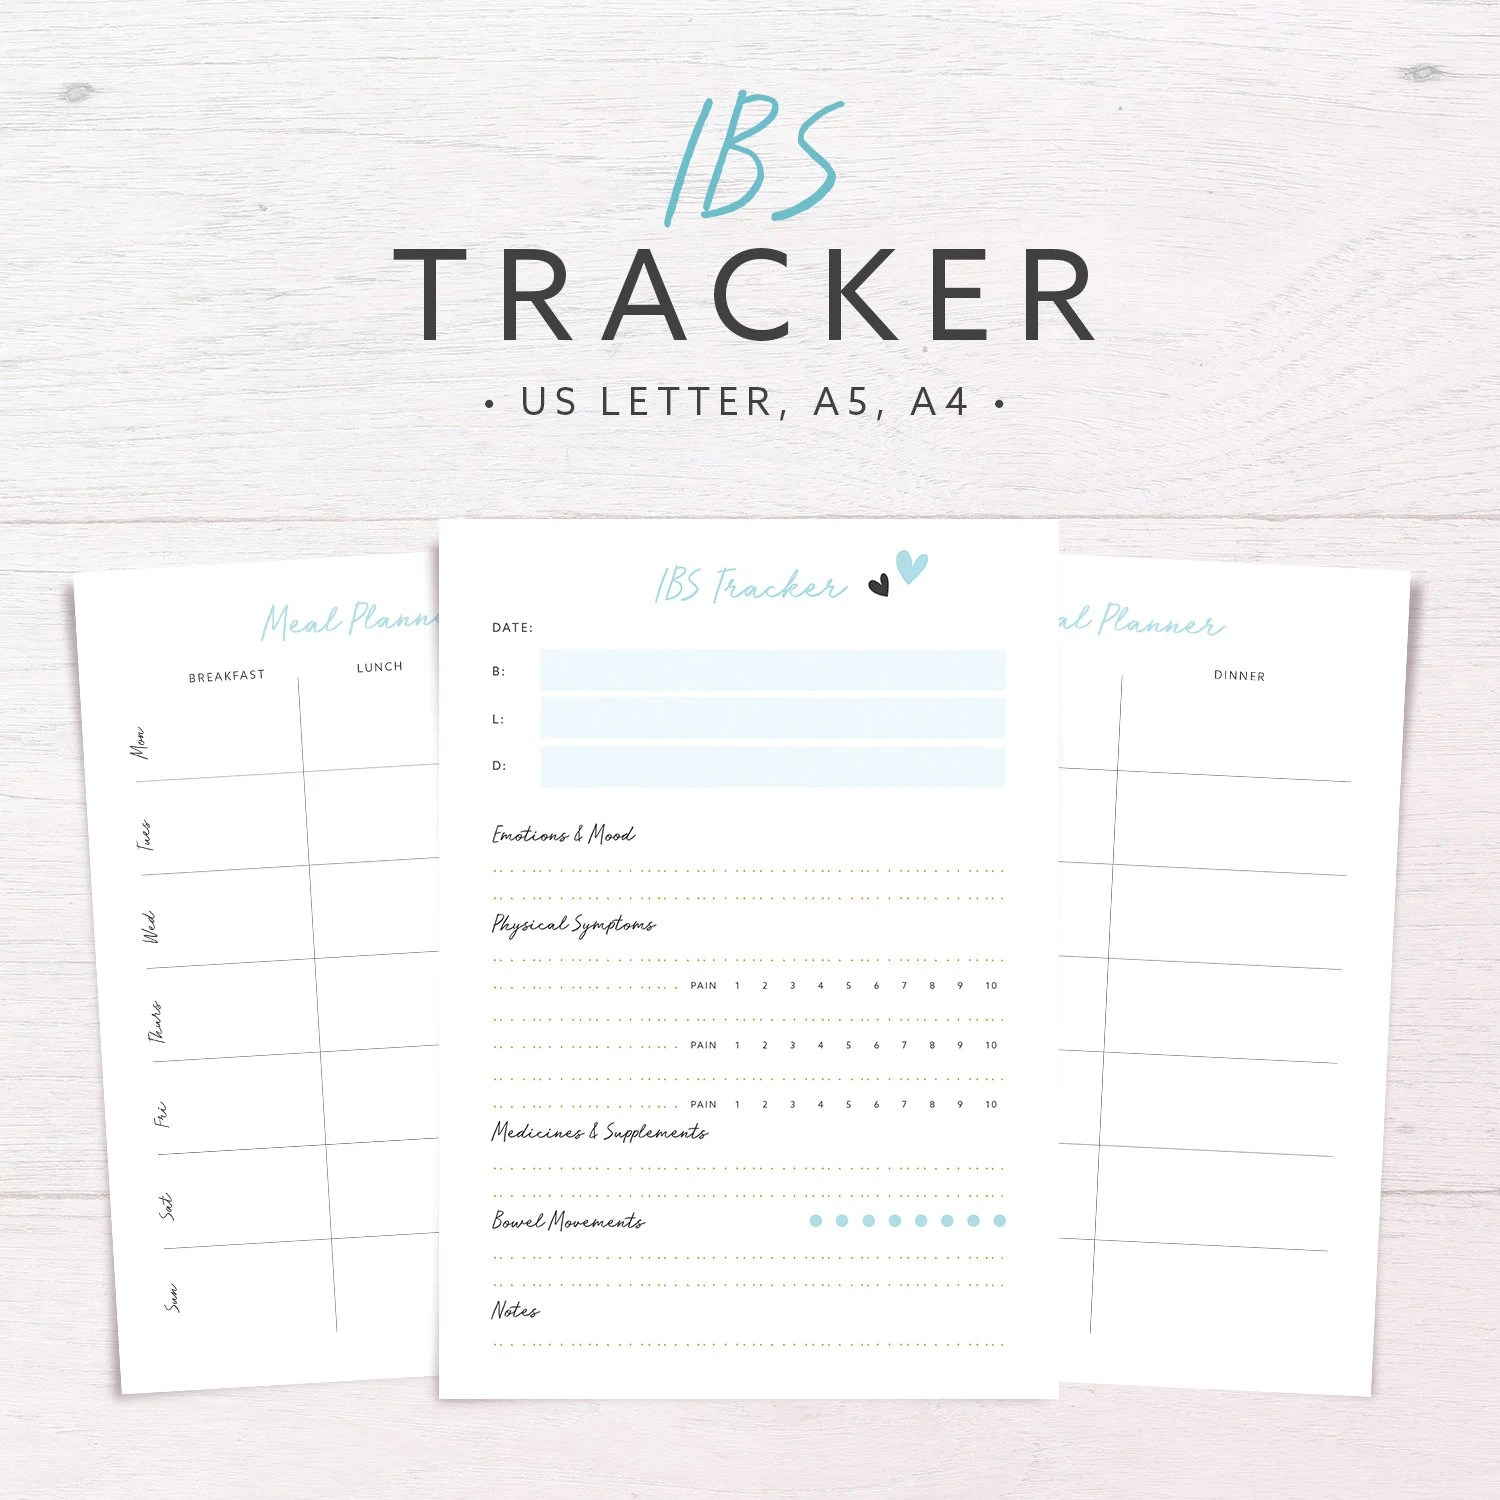 Ibs Tracker Food Diary Allergyt Tracker Meal